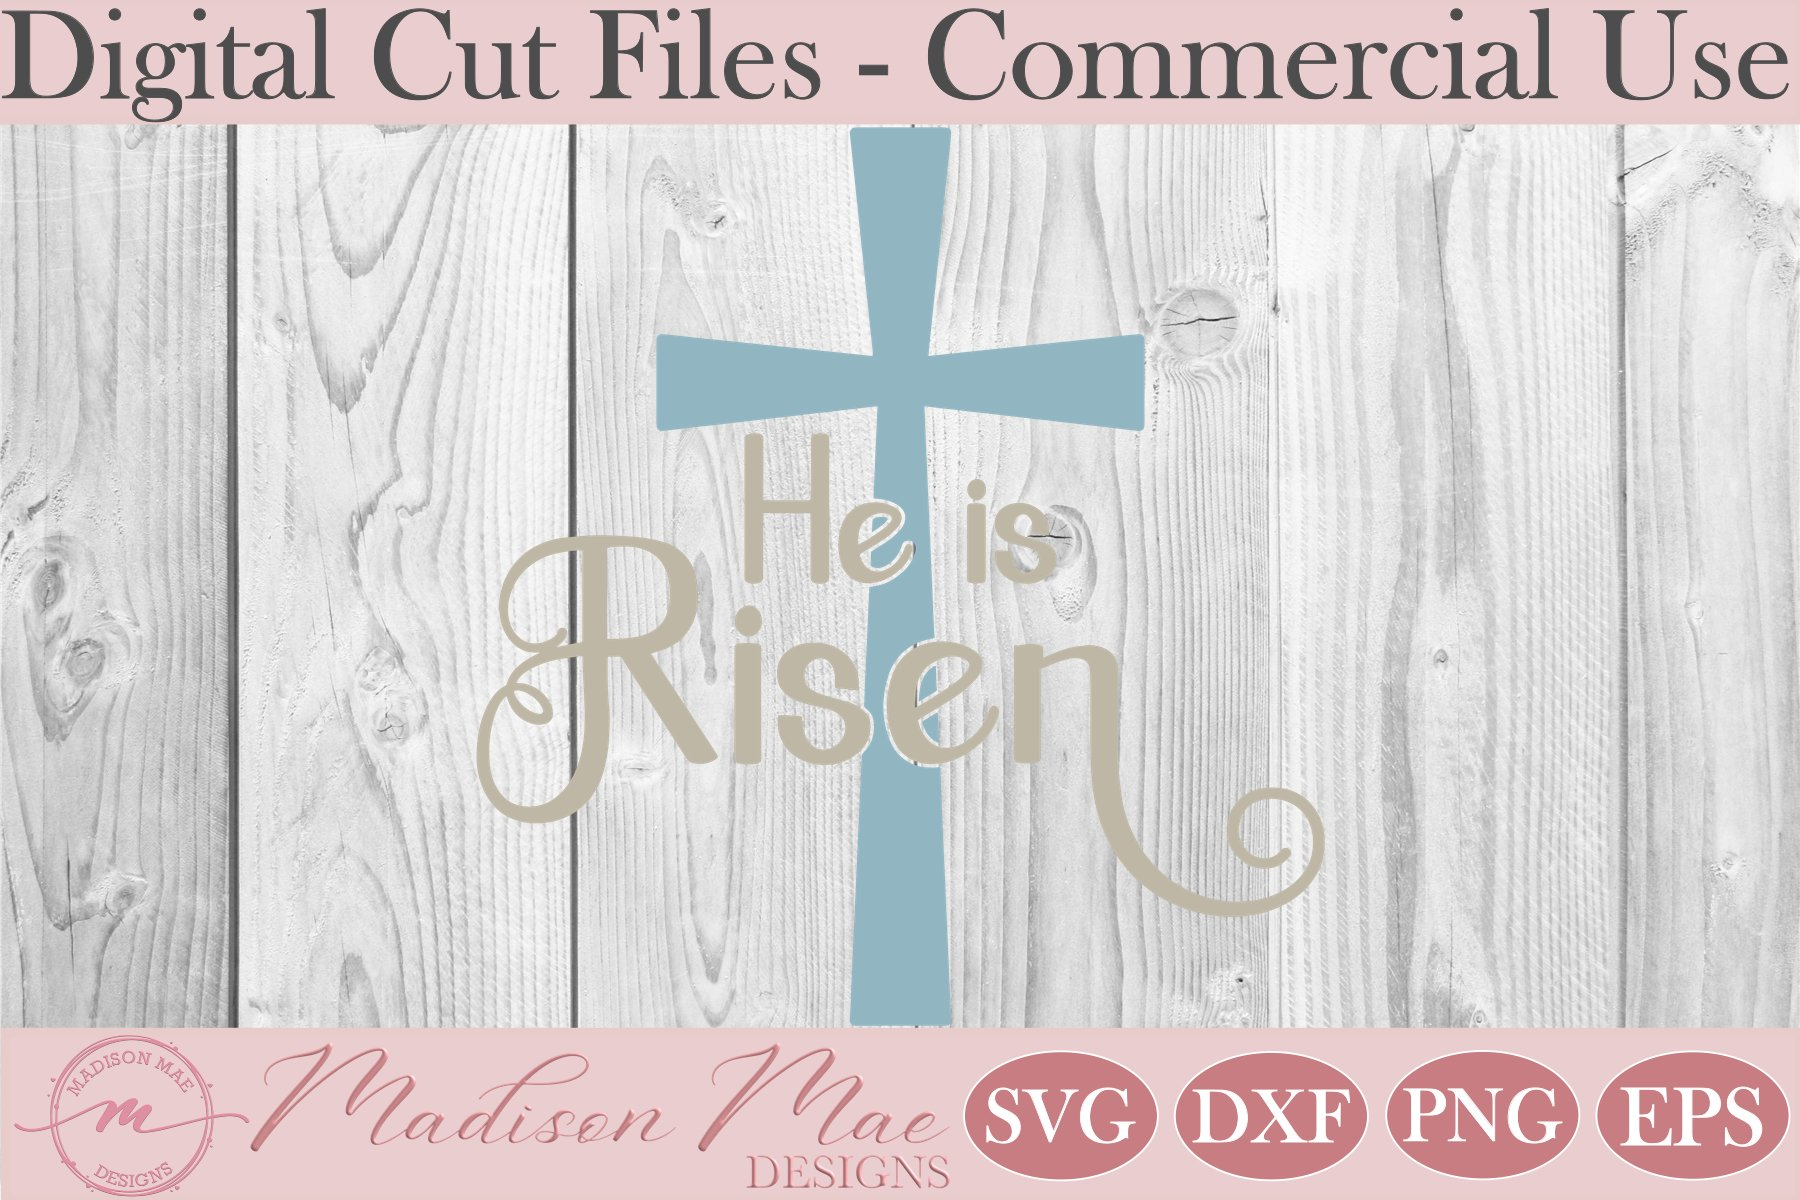 He Is Risen SVG, Jesus SVG, Easter Cut File example image 2